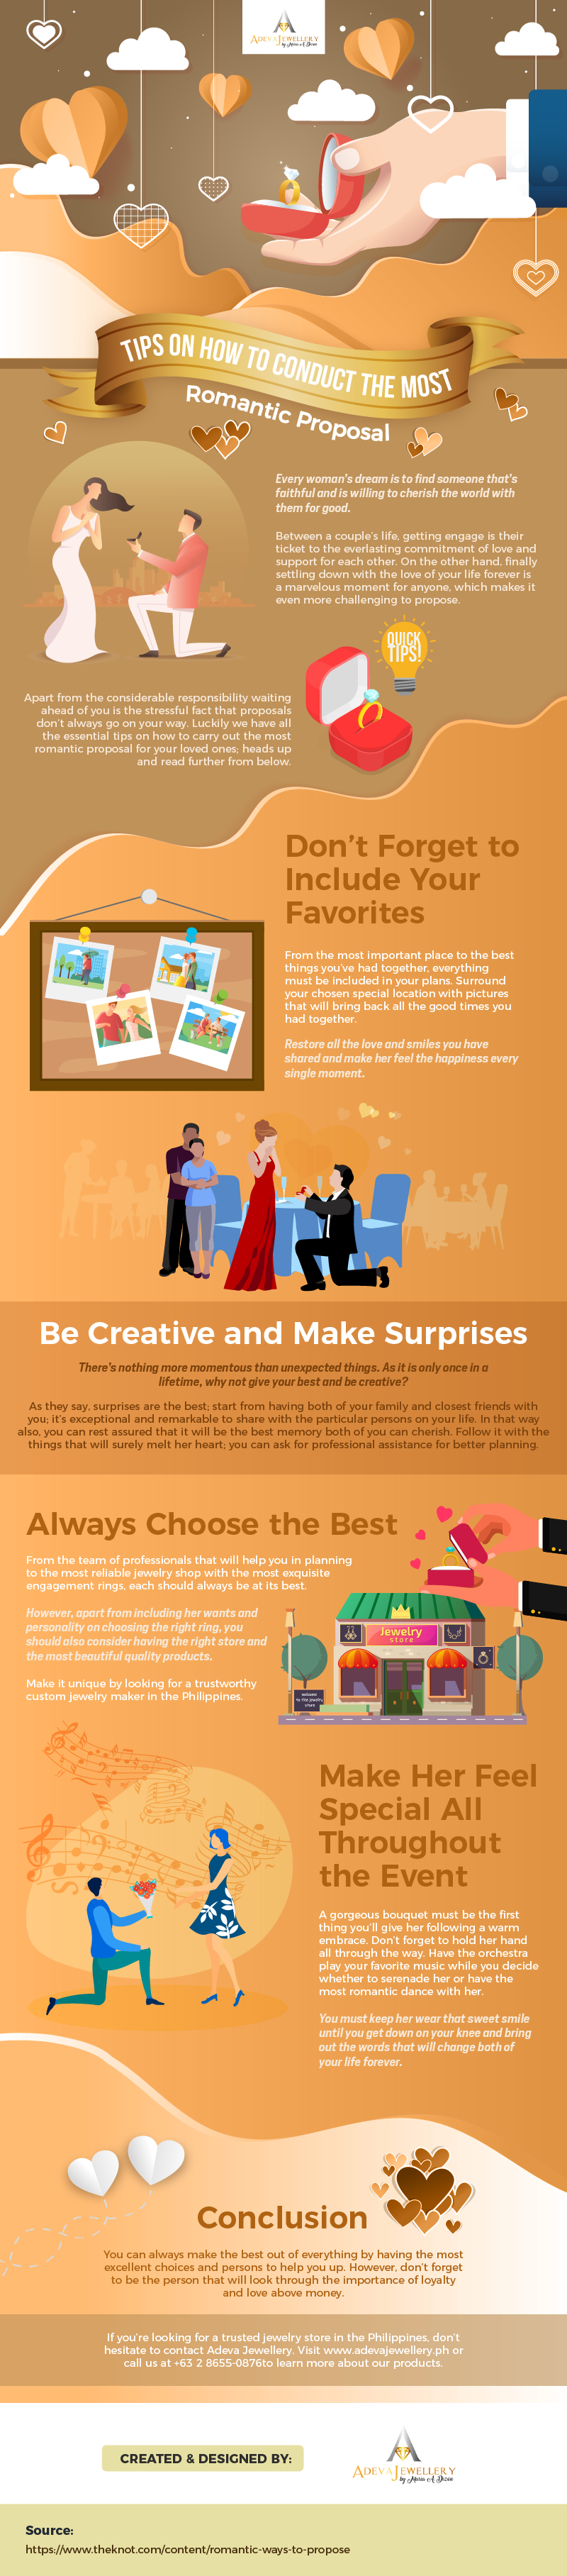 Tips on How to Conduct the Most Romantic Proposal #infographic